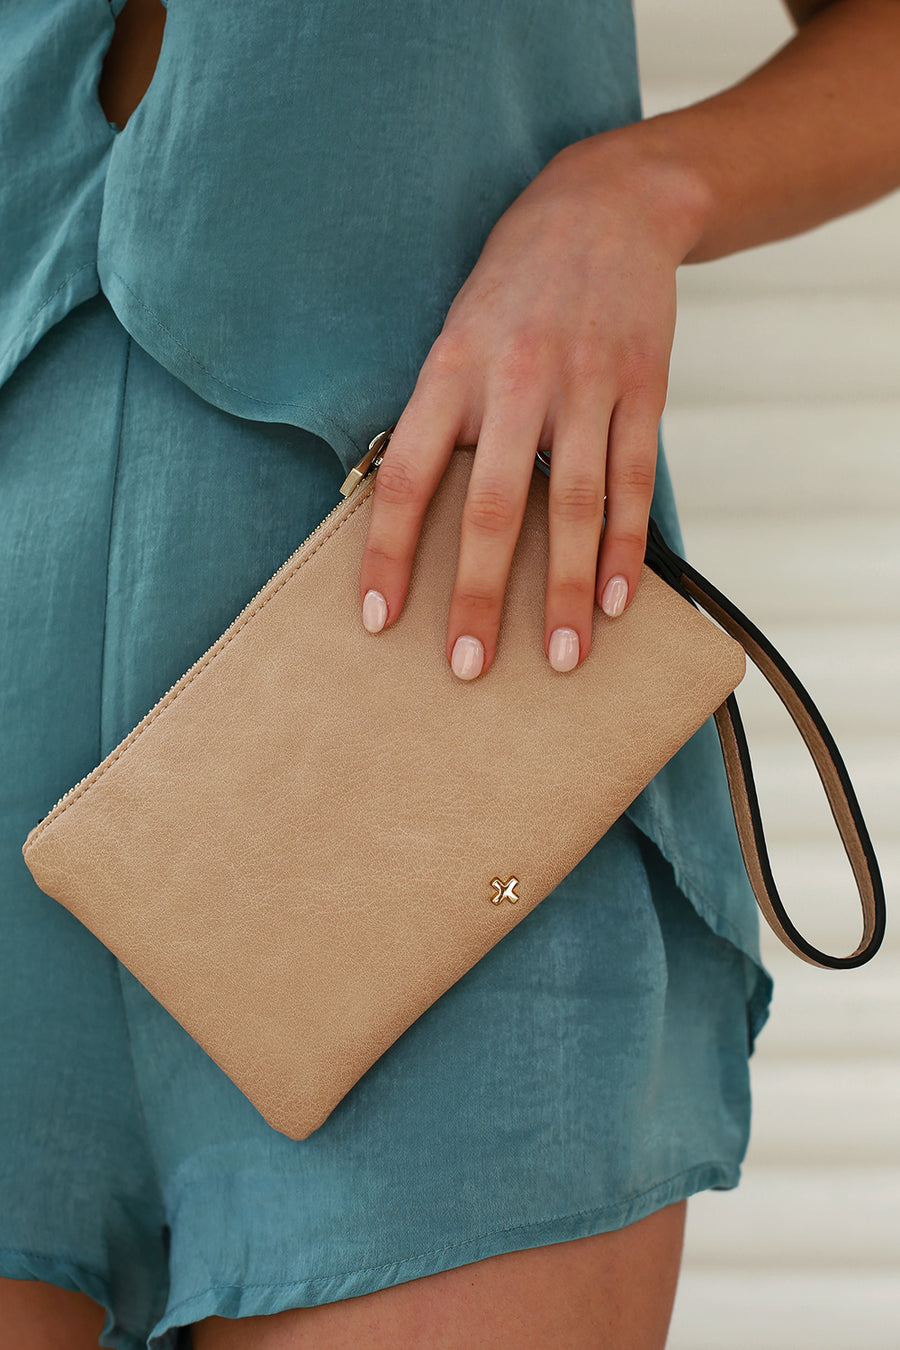 Bella Clutch in Nude for $39.95